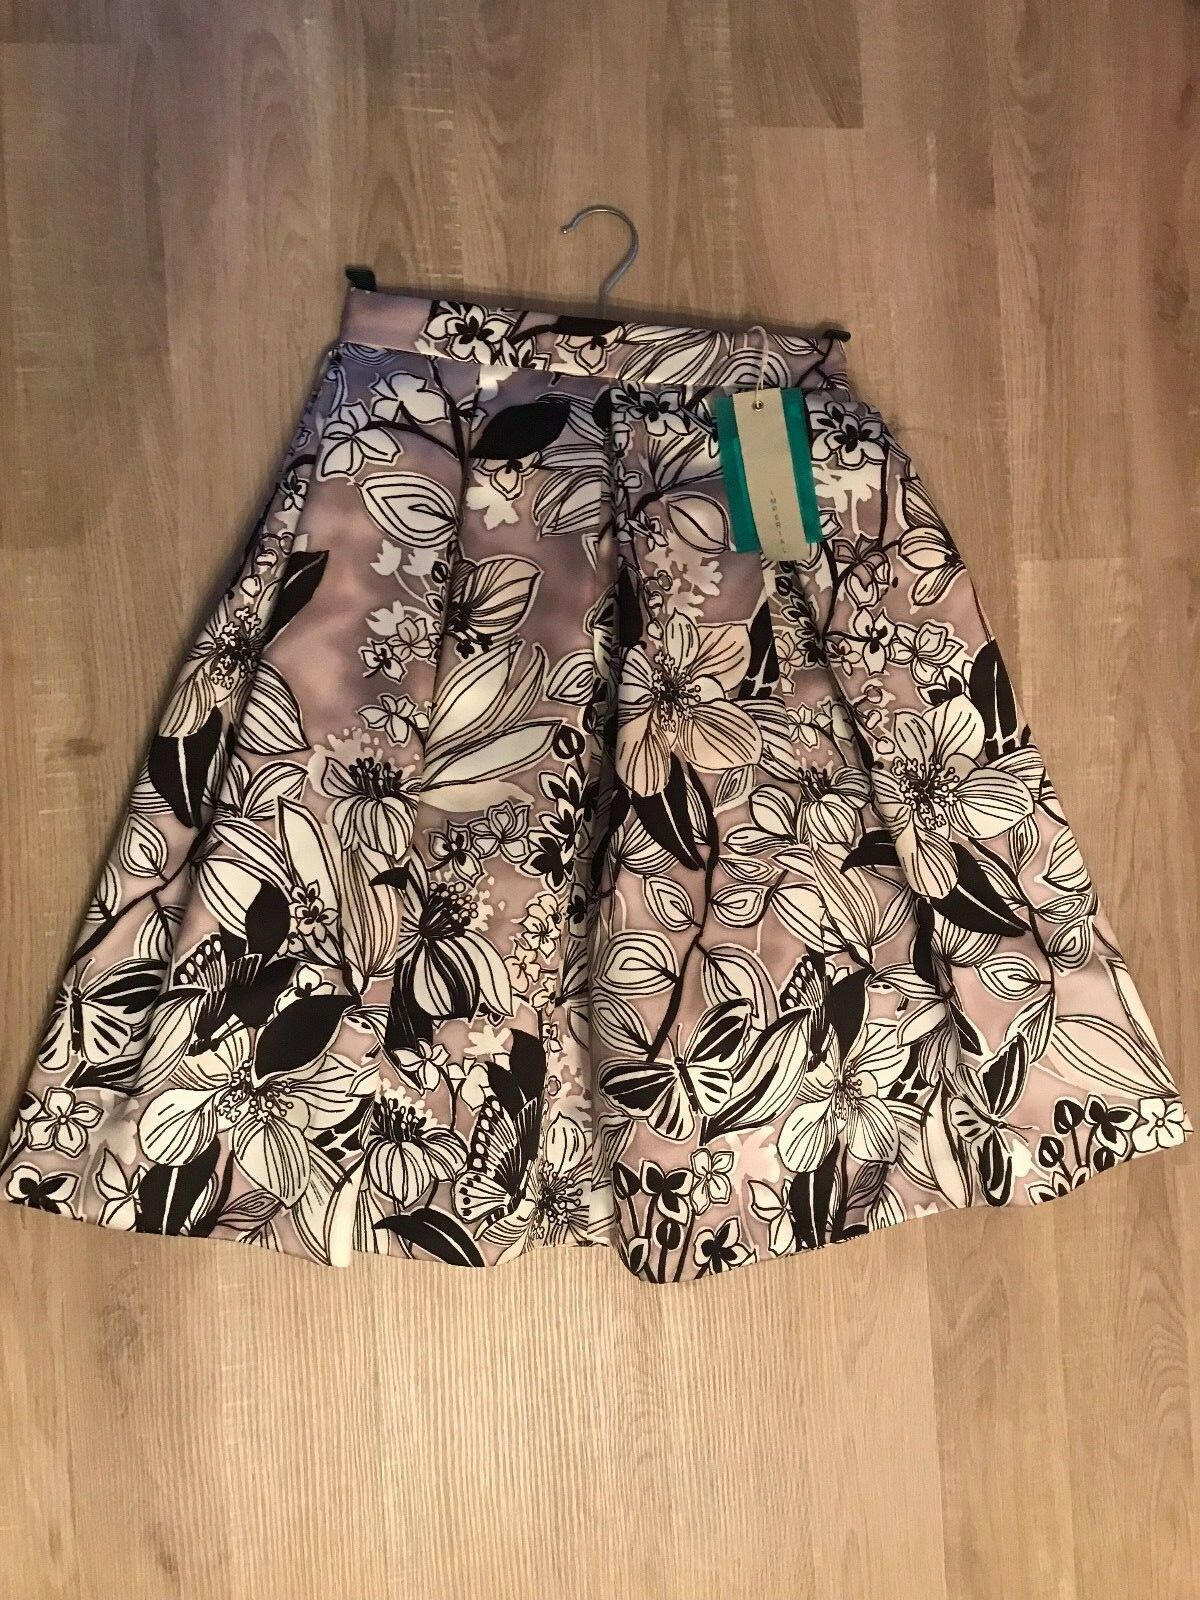 IMPERIAL Floral Skirt, size xs s, new with tags